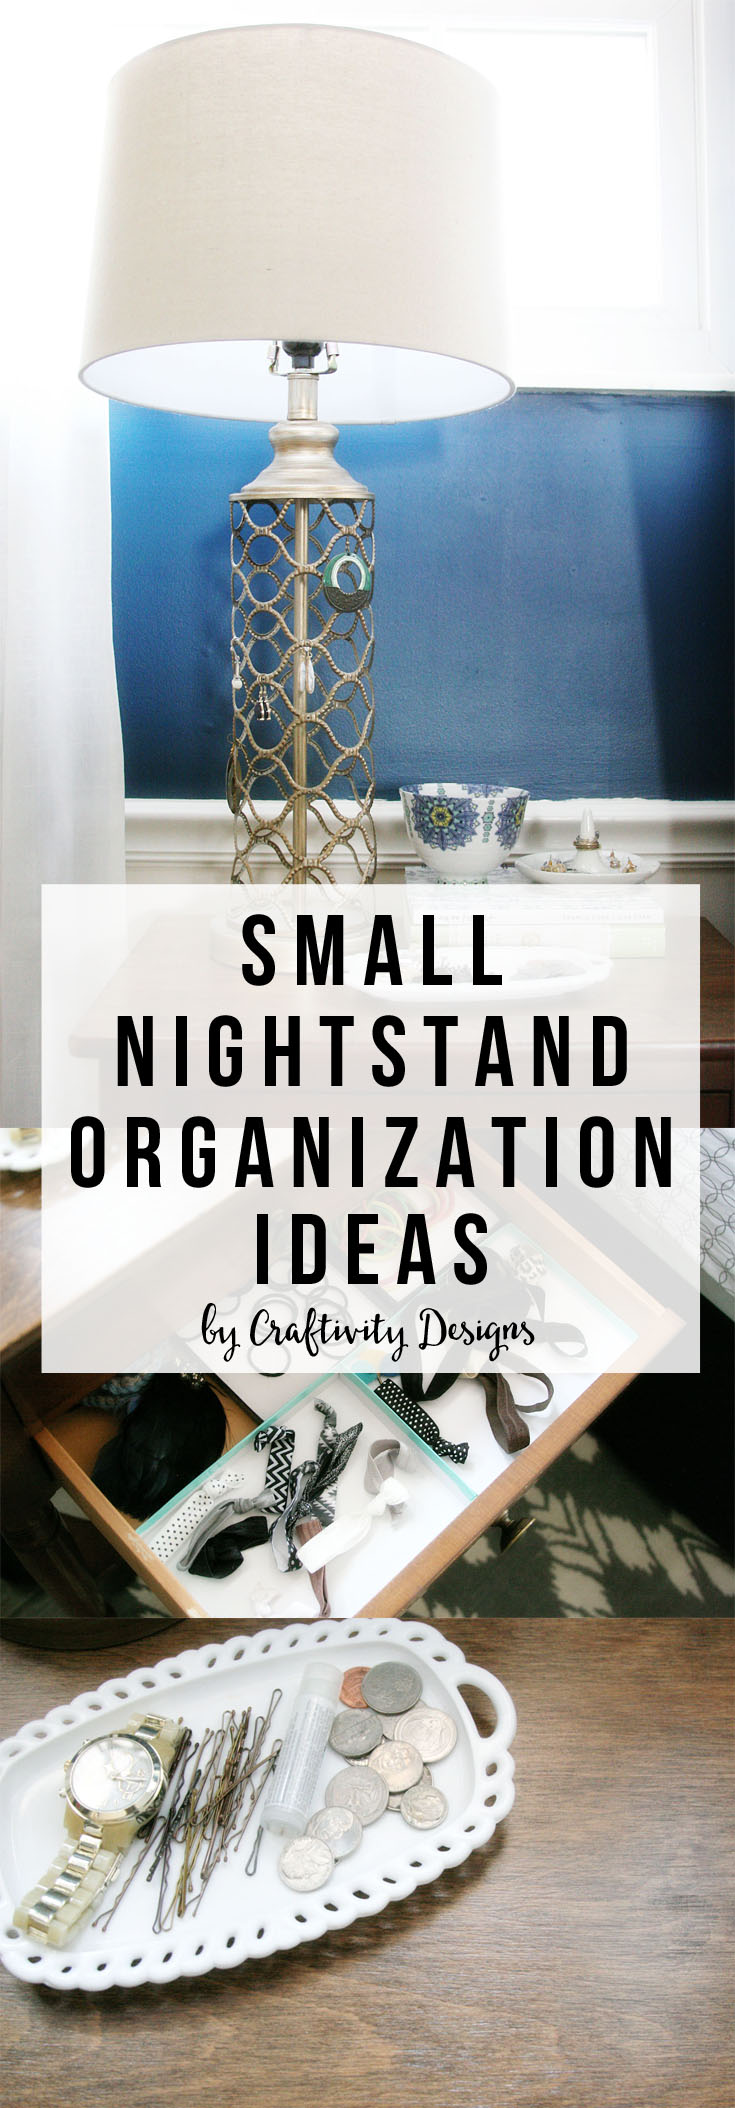 Small Nightstand Organization